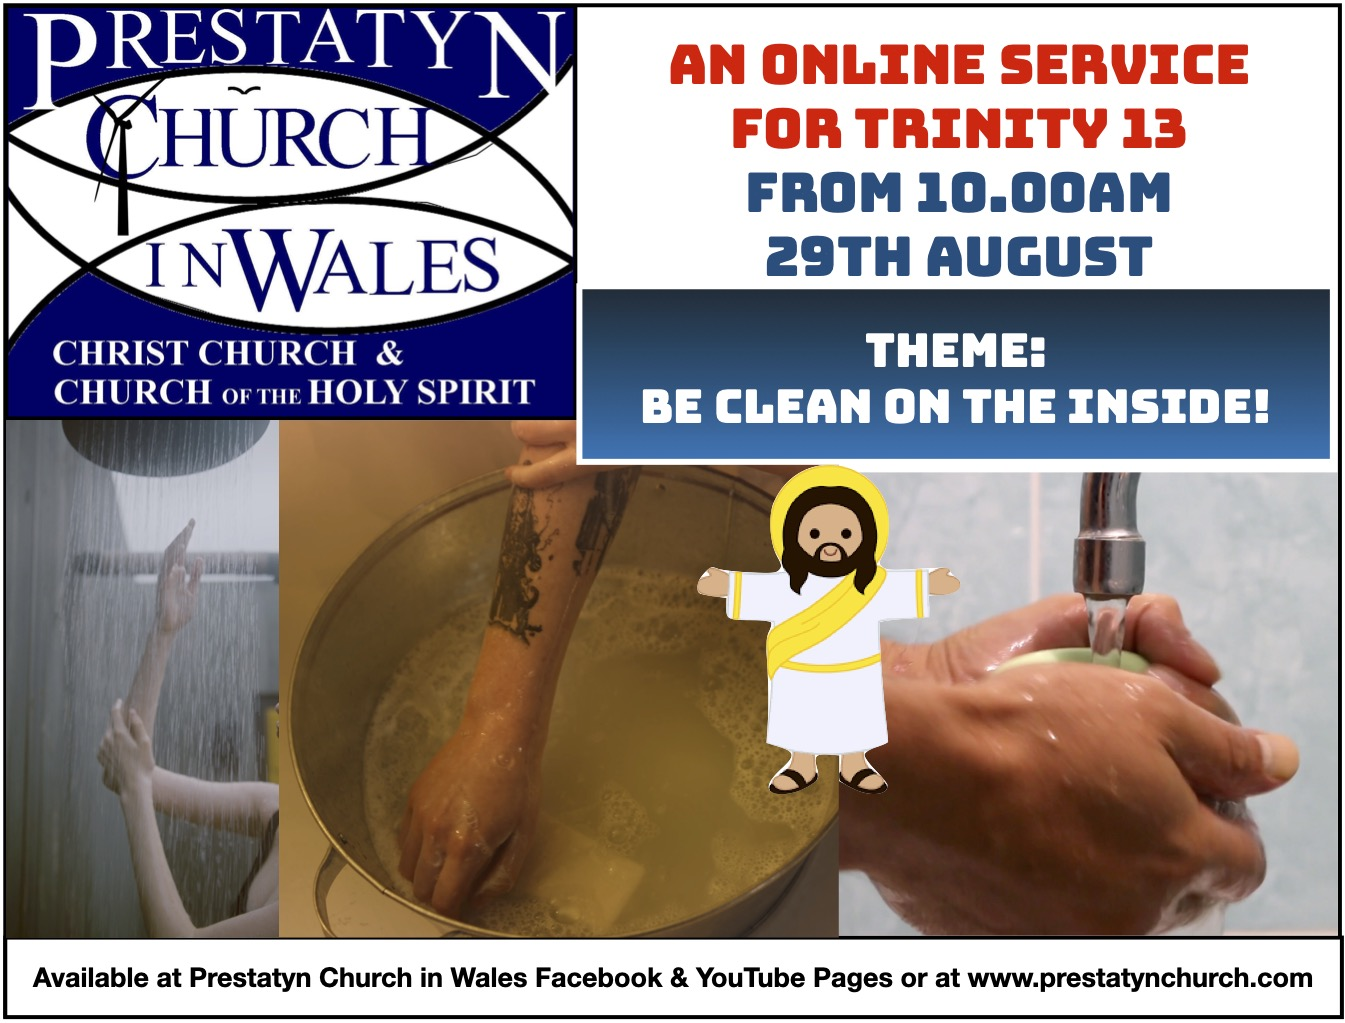 """Text reads: """"Prestatyn Church In Wales. Christ Church & Church of the Holy Spirit."""" """"An Online Service For Trinity 13. From 10:00AM 29th August."""" """"Theme: Be Clean On The Inside."""" """"Available at Prestatyn Church In Wales Facebook & Youtube Pages or at www.prestatynchurch.com."""""""